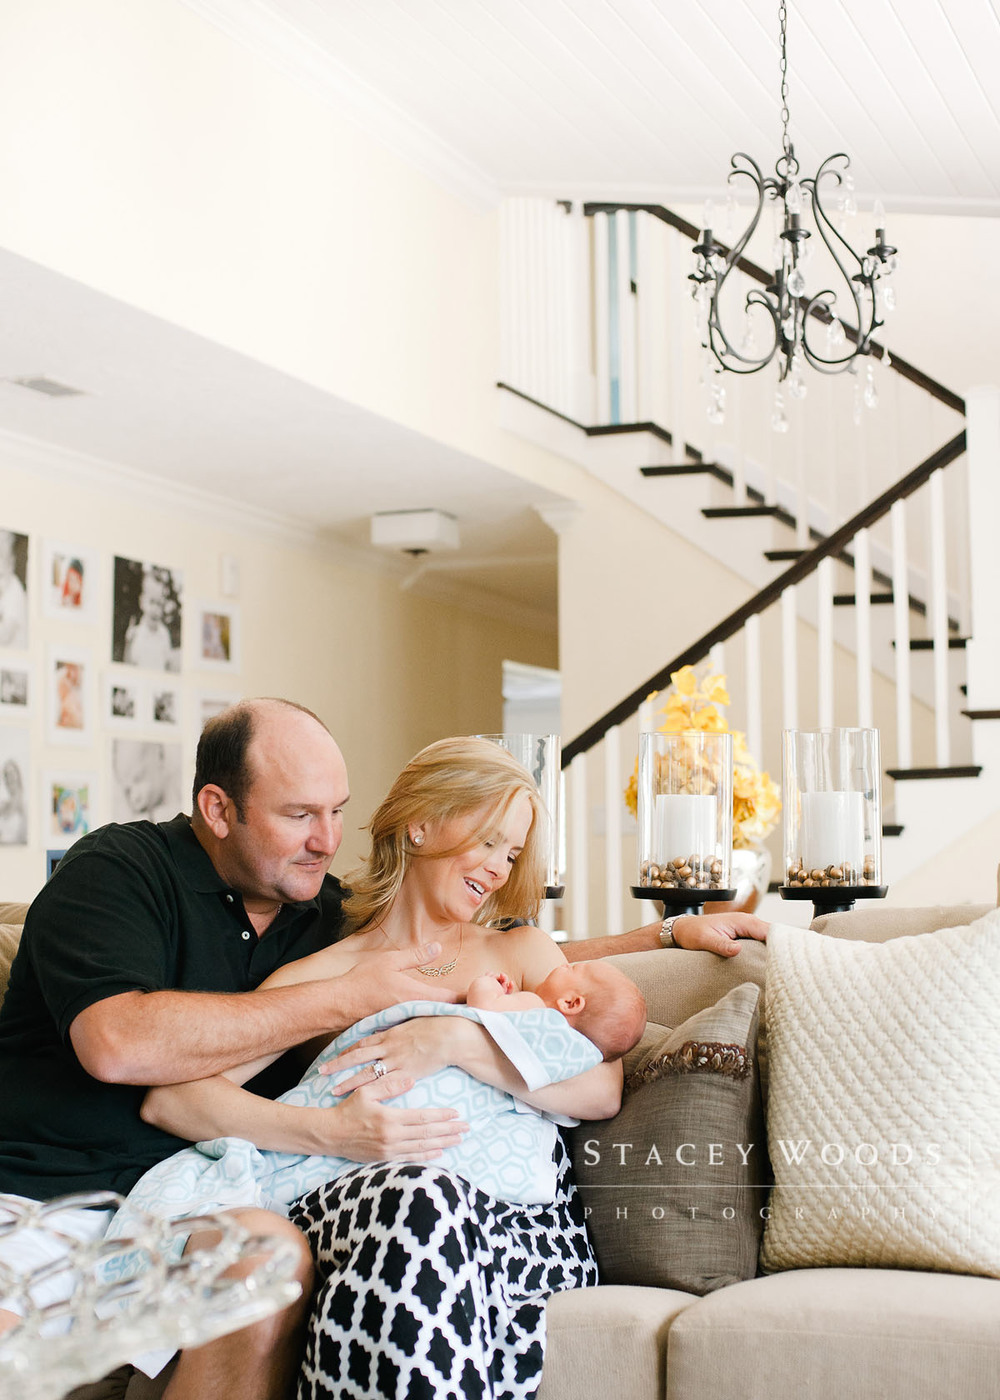 Family photography Stacey Woods